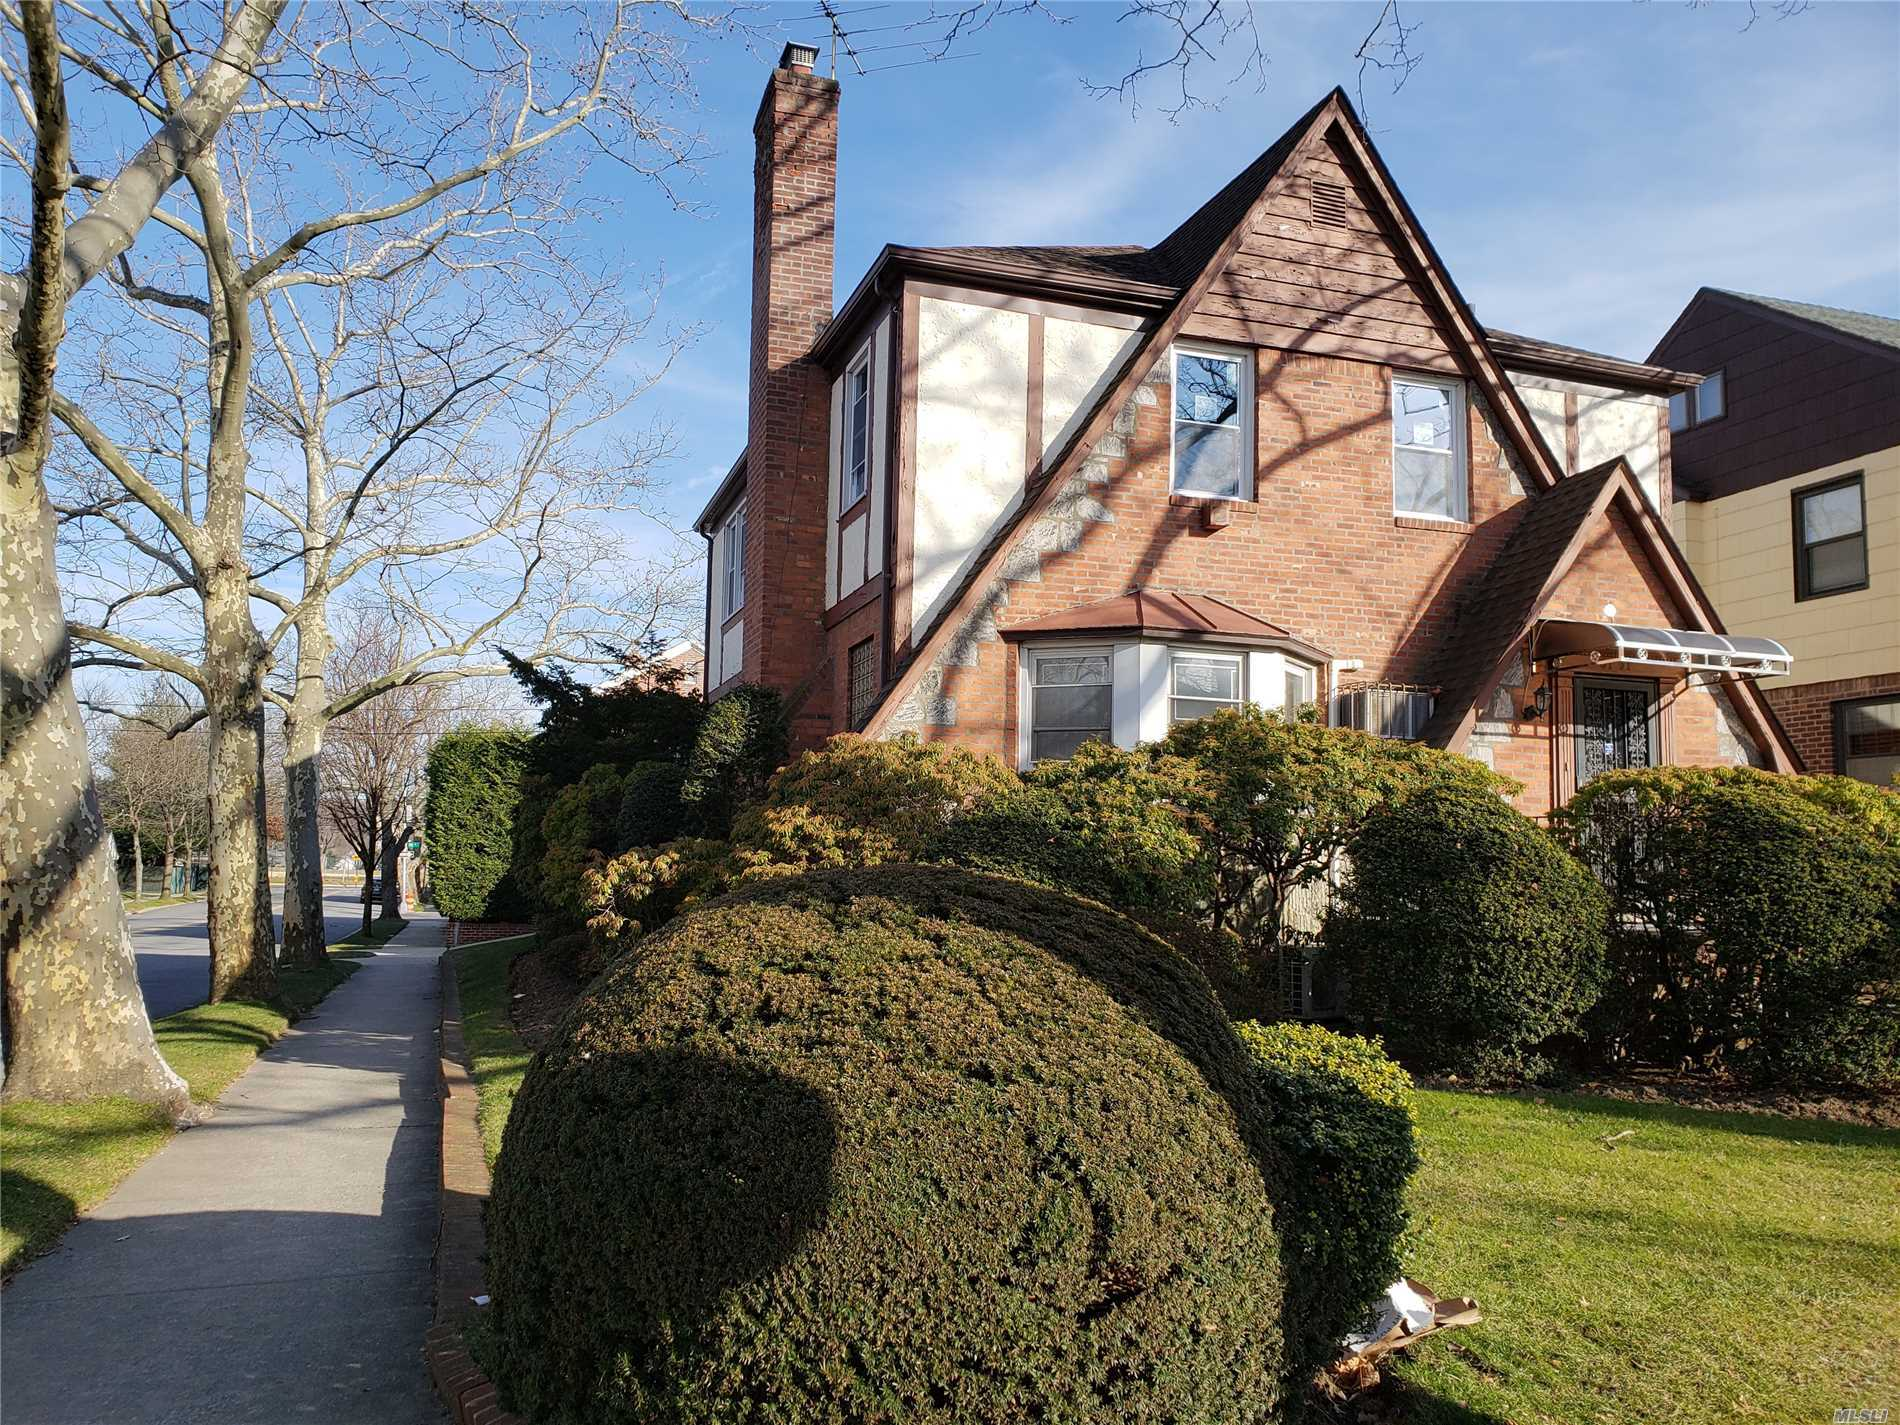 Spacious House For Rent In Jamaica Estates! Large 3 Bed, 2.5 Bath, New Windows, Refinished Hardwood Fl, Whole House Just Painted, Eat In Kitchen, Living Rm, With Fireplace, Skylight, Dining Rm, Florida Rm, Full Finished Basement Sep. Entrance, Great Location, Must See!!!!